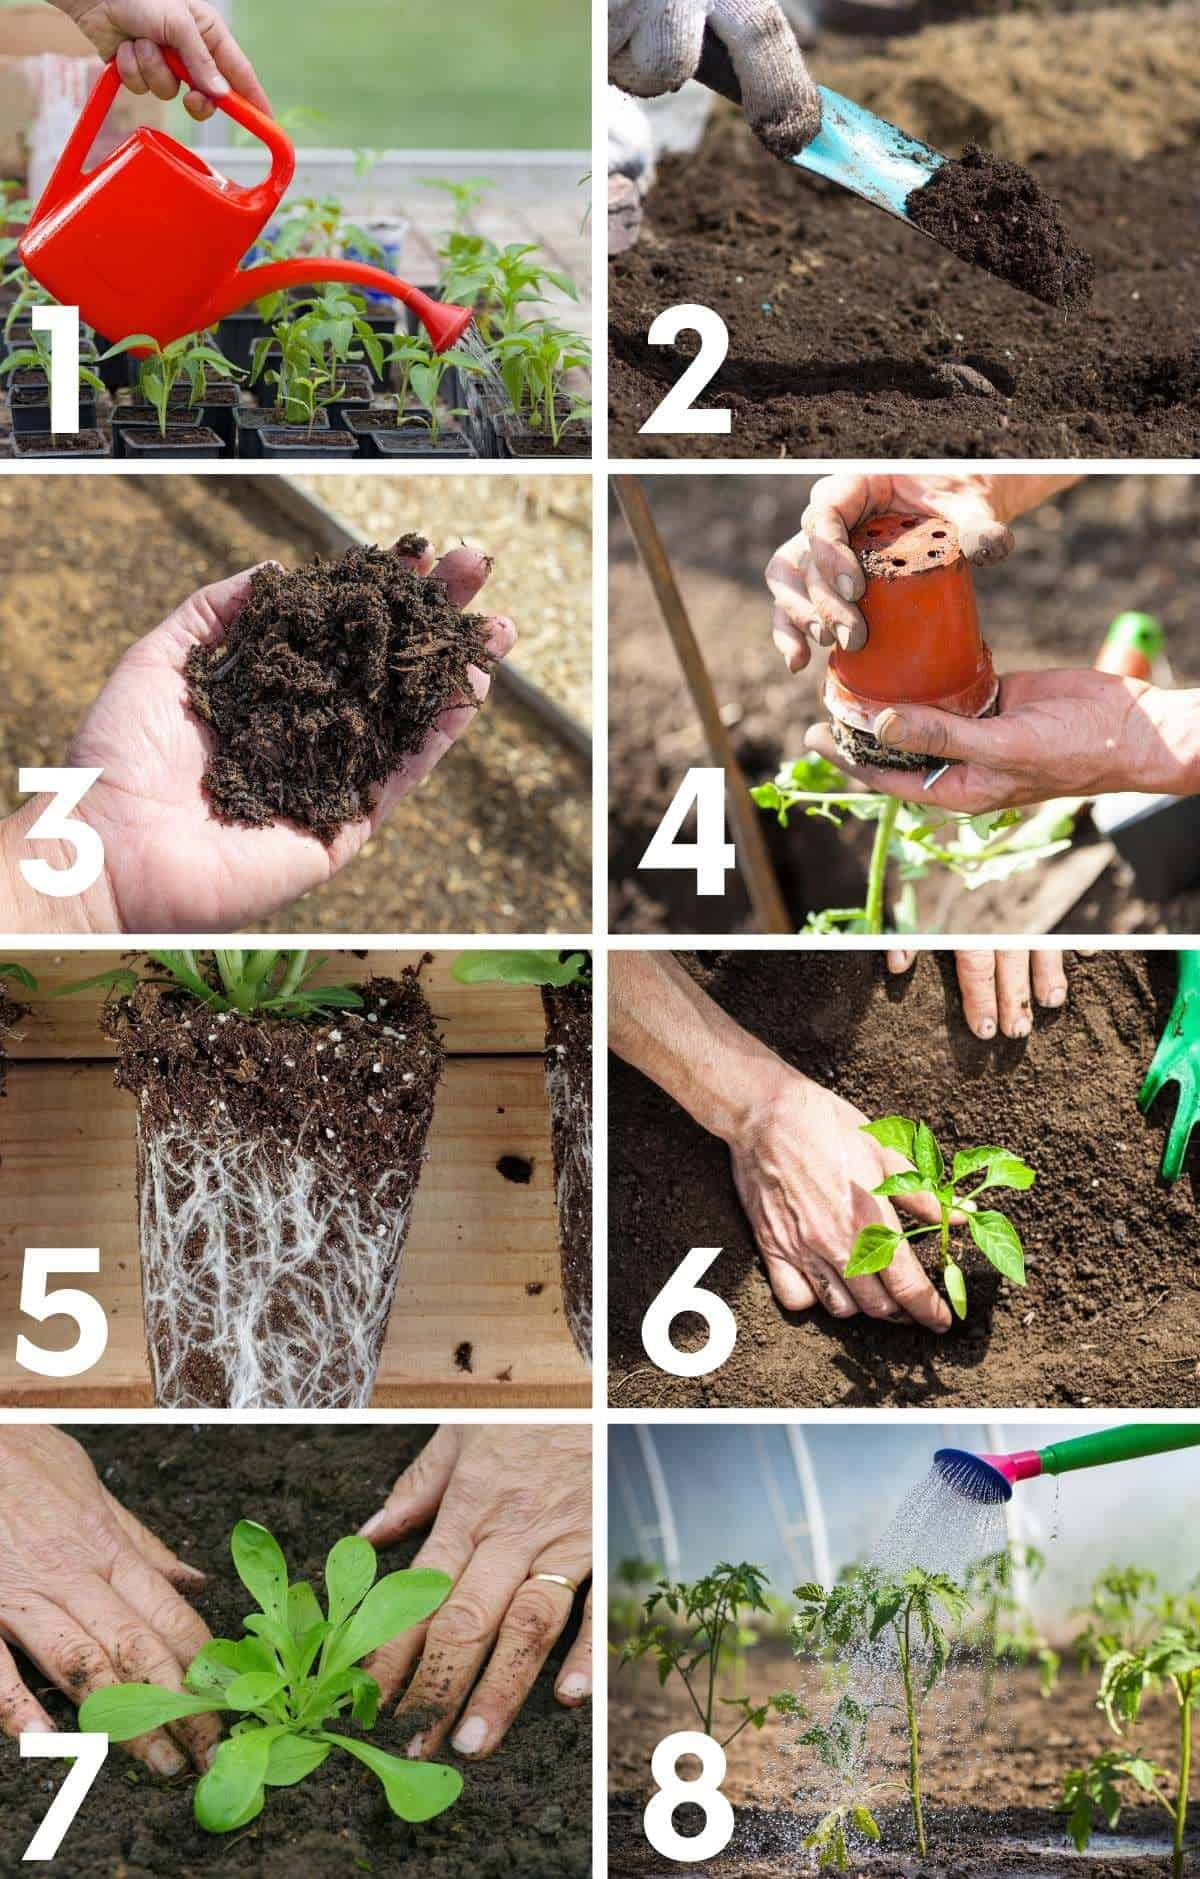 Step by step image of how to plant seedlings